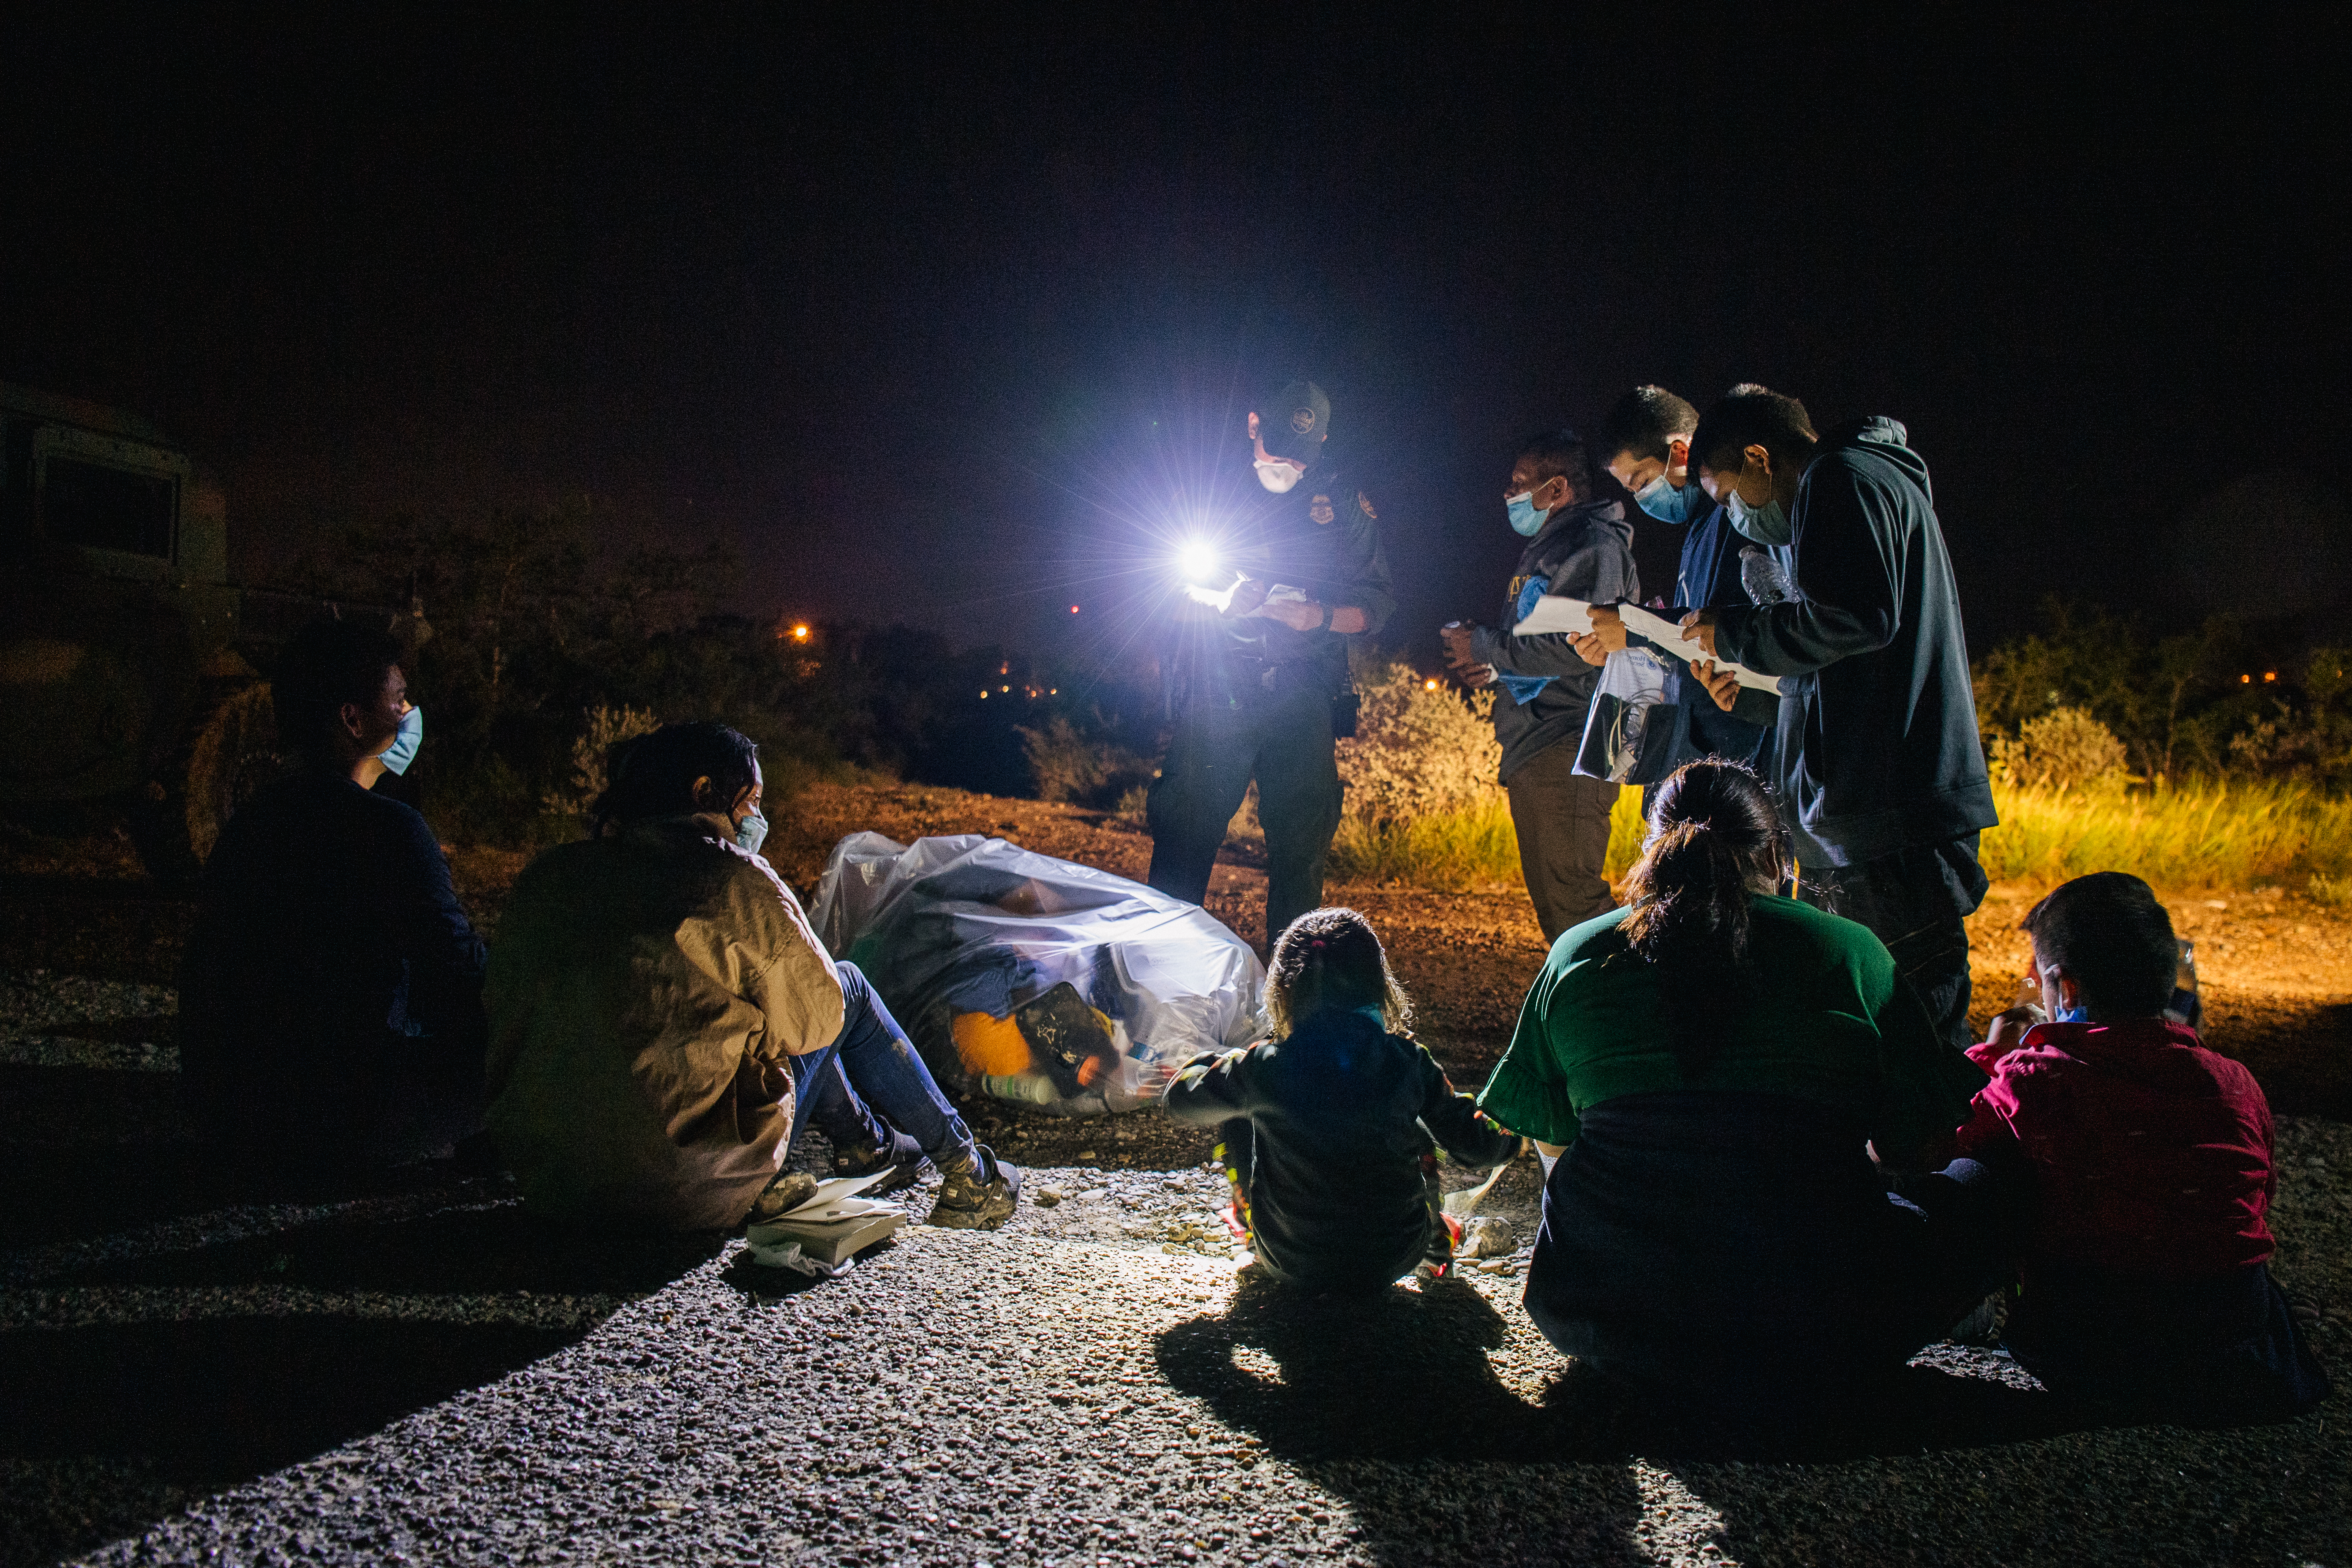 Migrants are accounted for and processed by border patrol after crossing the Rio Grande into the United States on July 01, 2021 in Roma, Texas. (Photo by Brandon Bell/Getty Images)